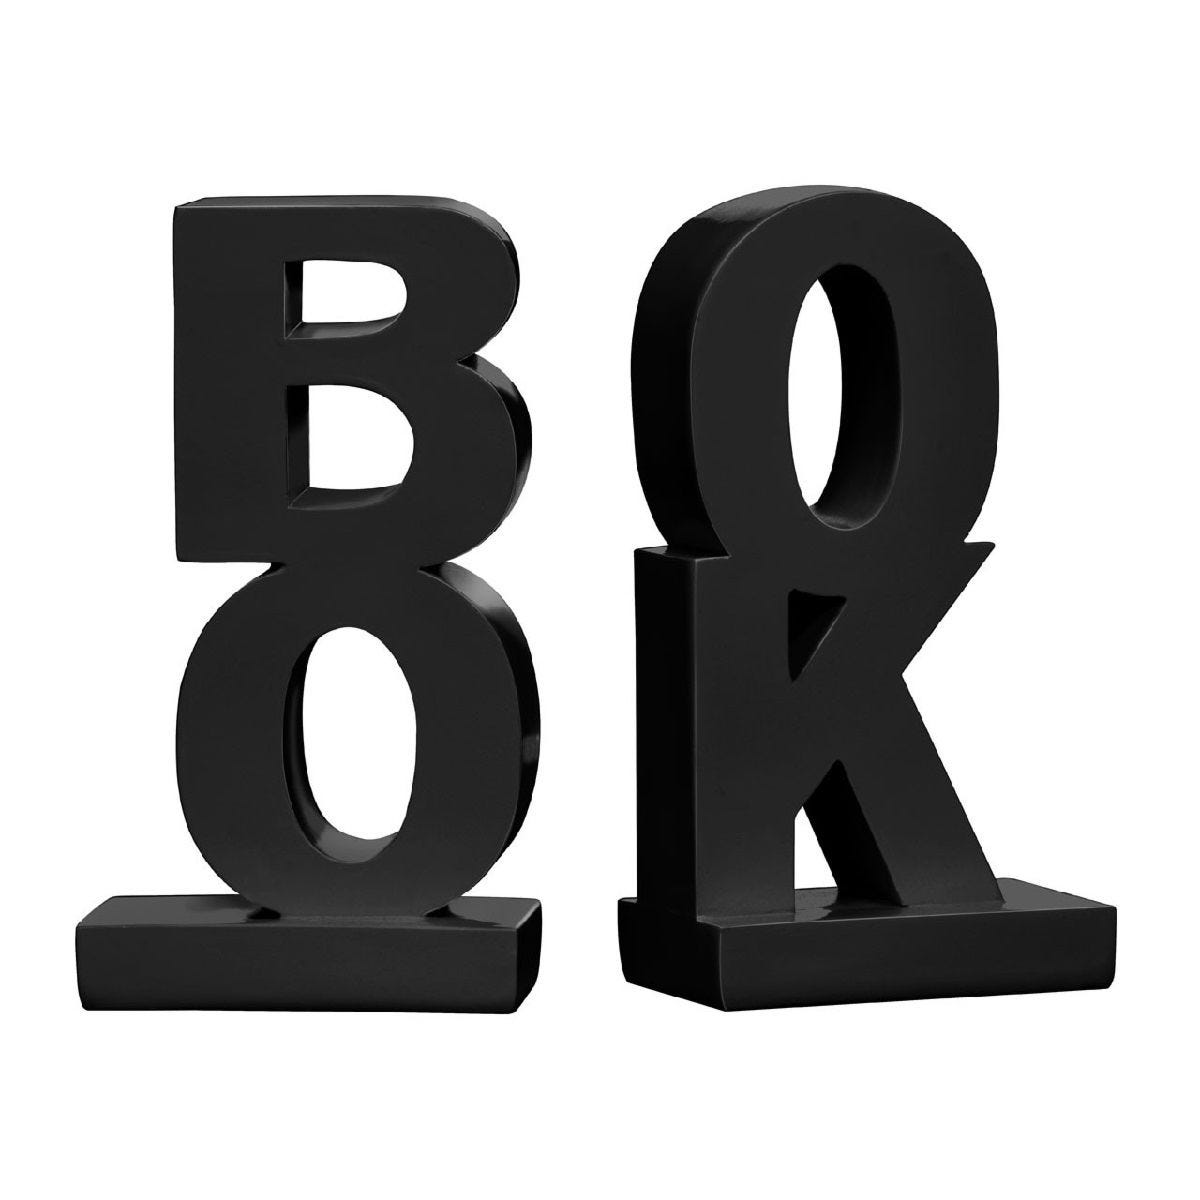 Premier Housewares 'Book' Bookends Set of 2 - Polyresin Black High Gloss